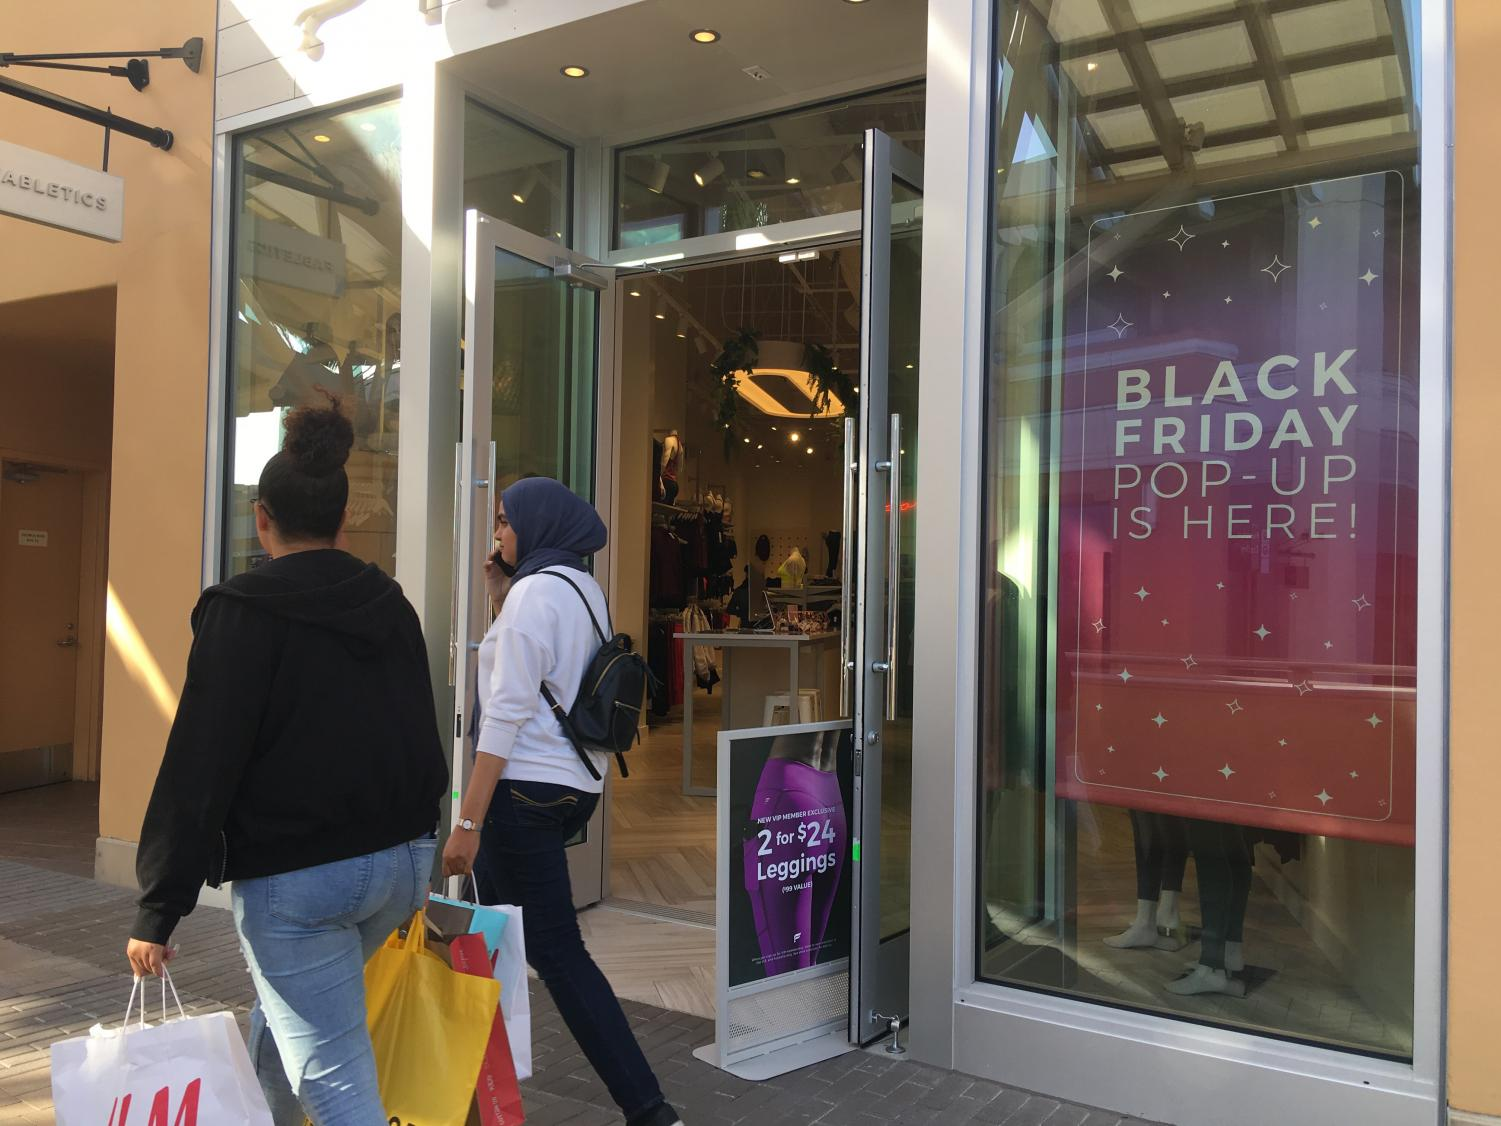 Black Friday sale draws the most customers many stores see all year. Photo by Melisa Cabello-Cuahutle